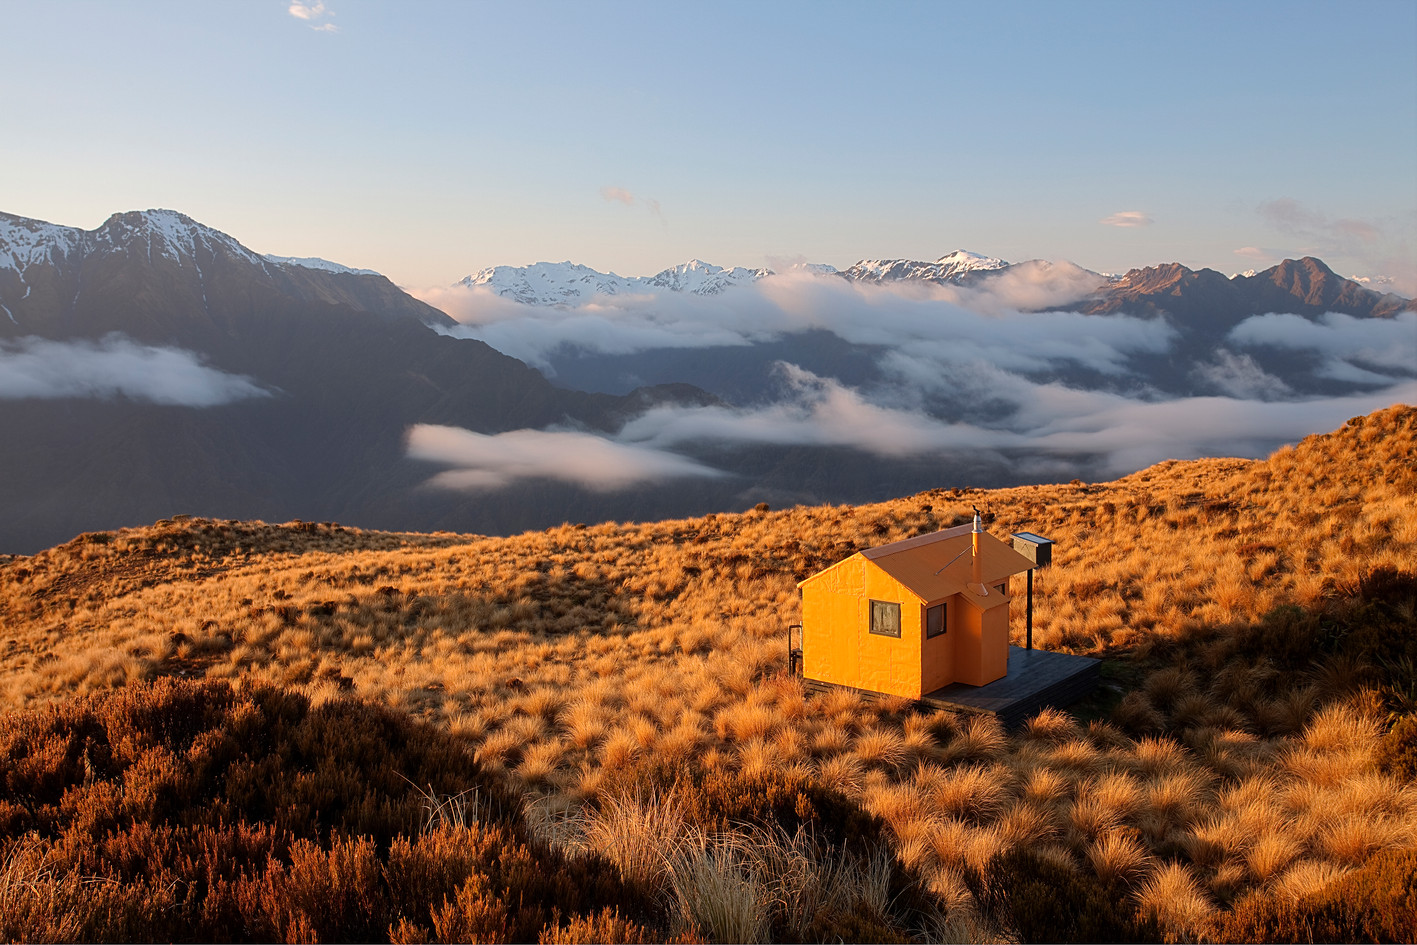 Mt Brown Hut is painted in Rescue Orange